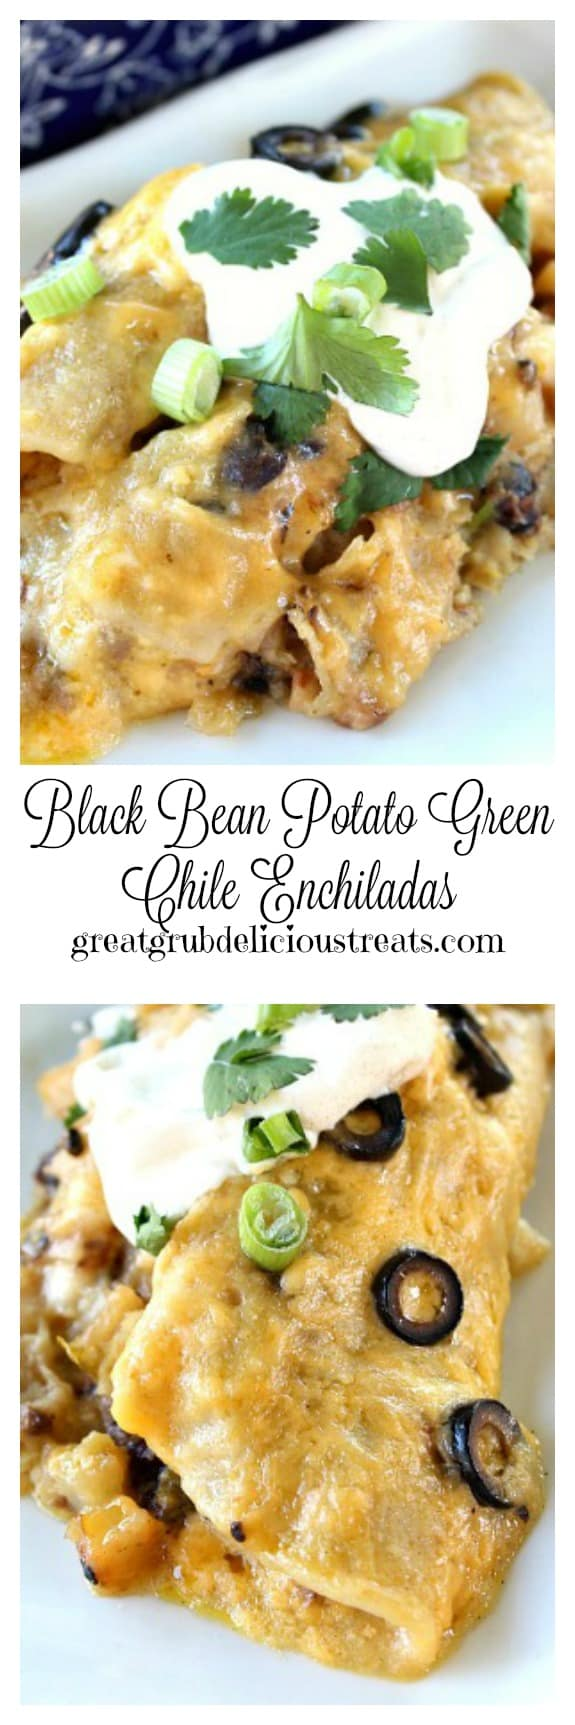 Black Bean Potato Green Chile Enchiladas